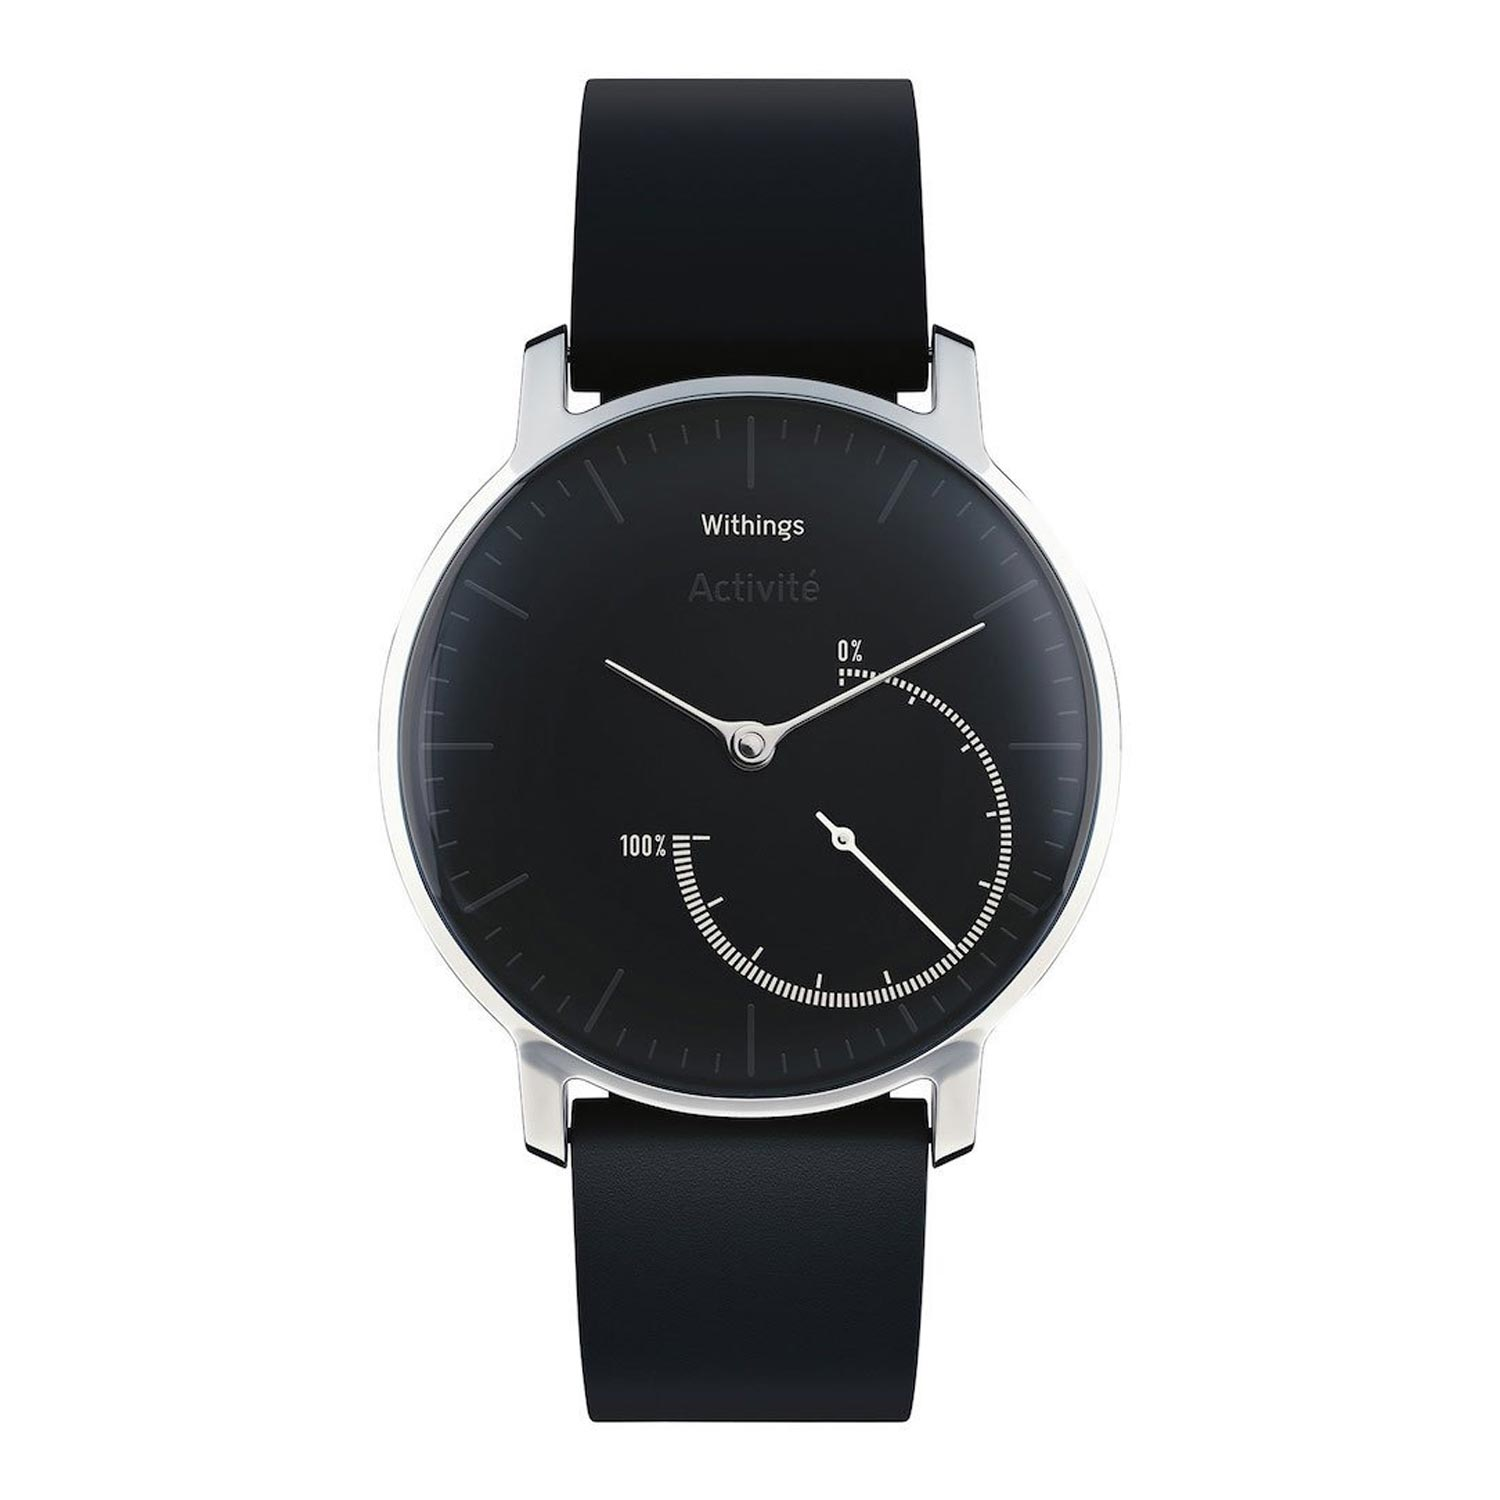 Withings-Activite-Steel-hybride-Analoguhr-mit-Smartwatch-Funktionen-1